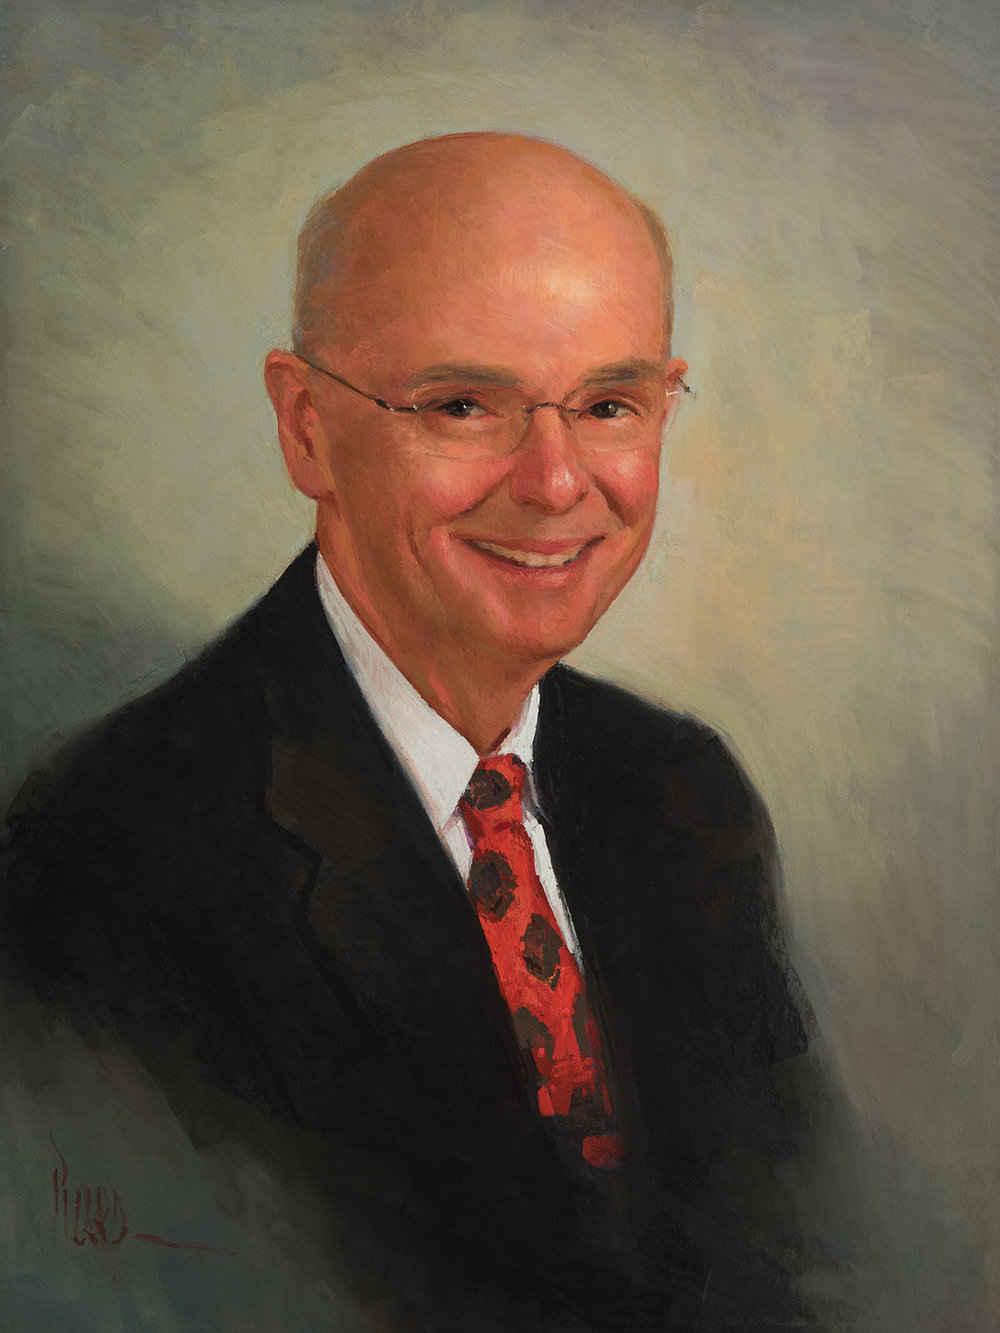 DR. O'CONNELL